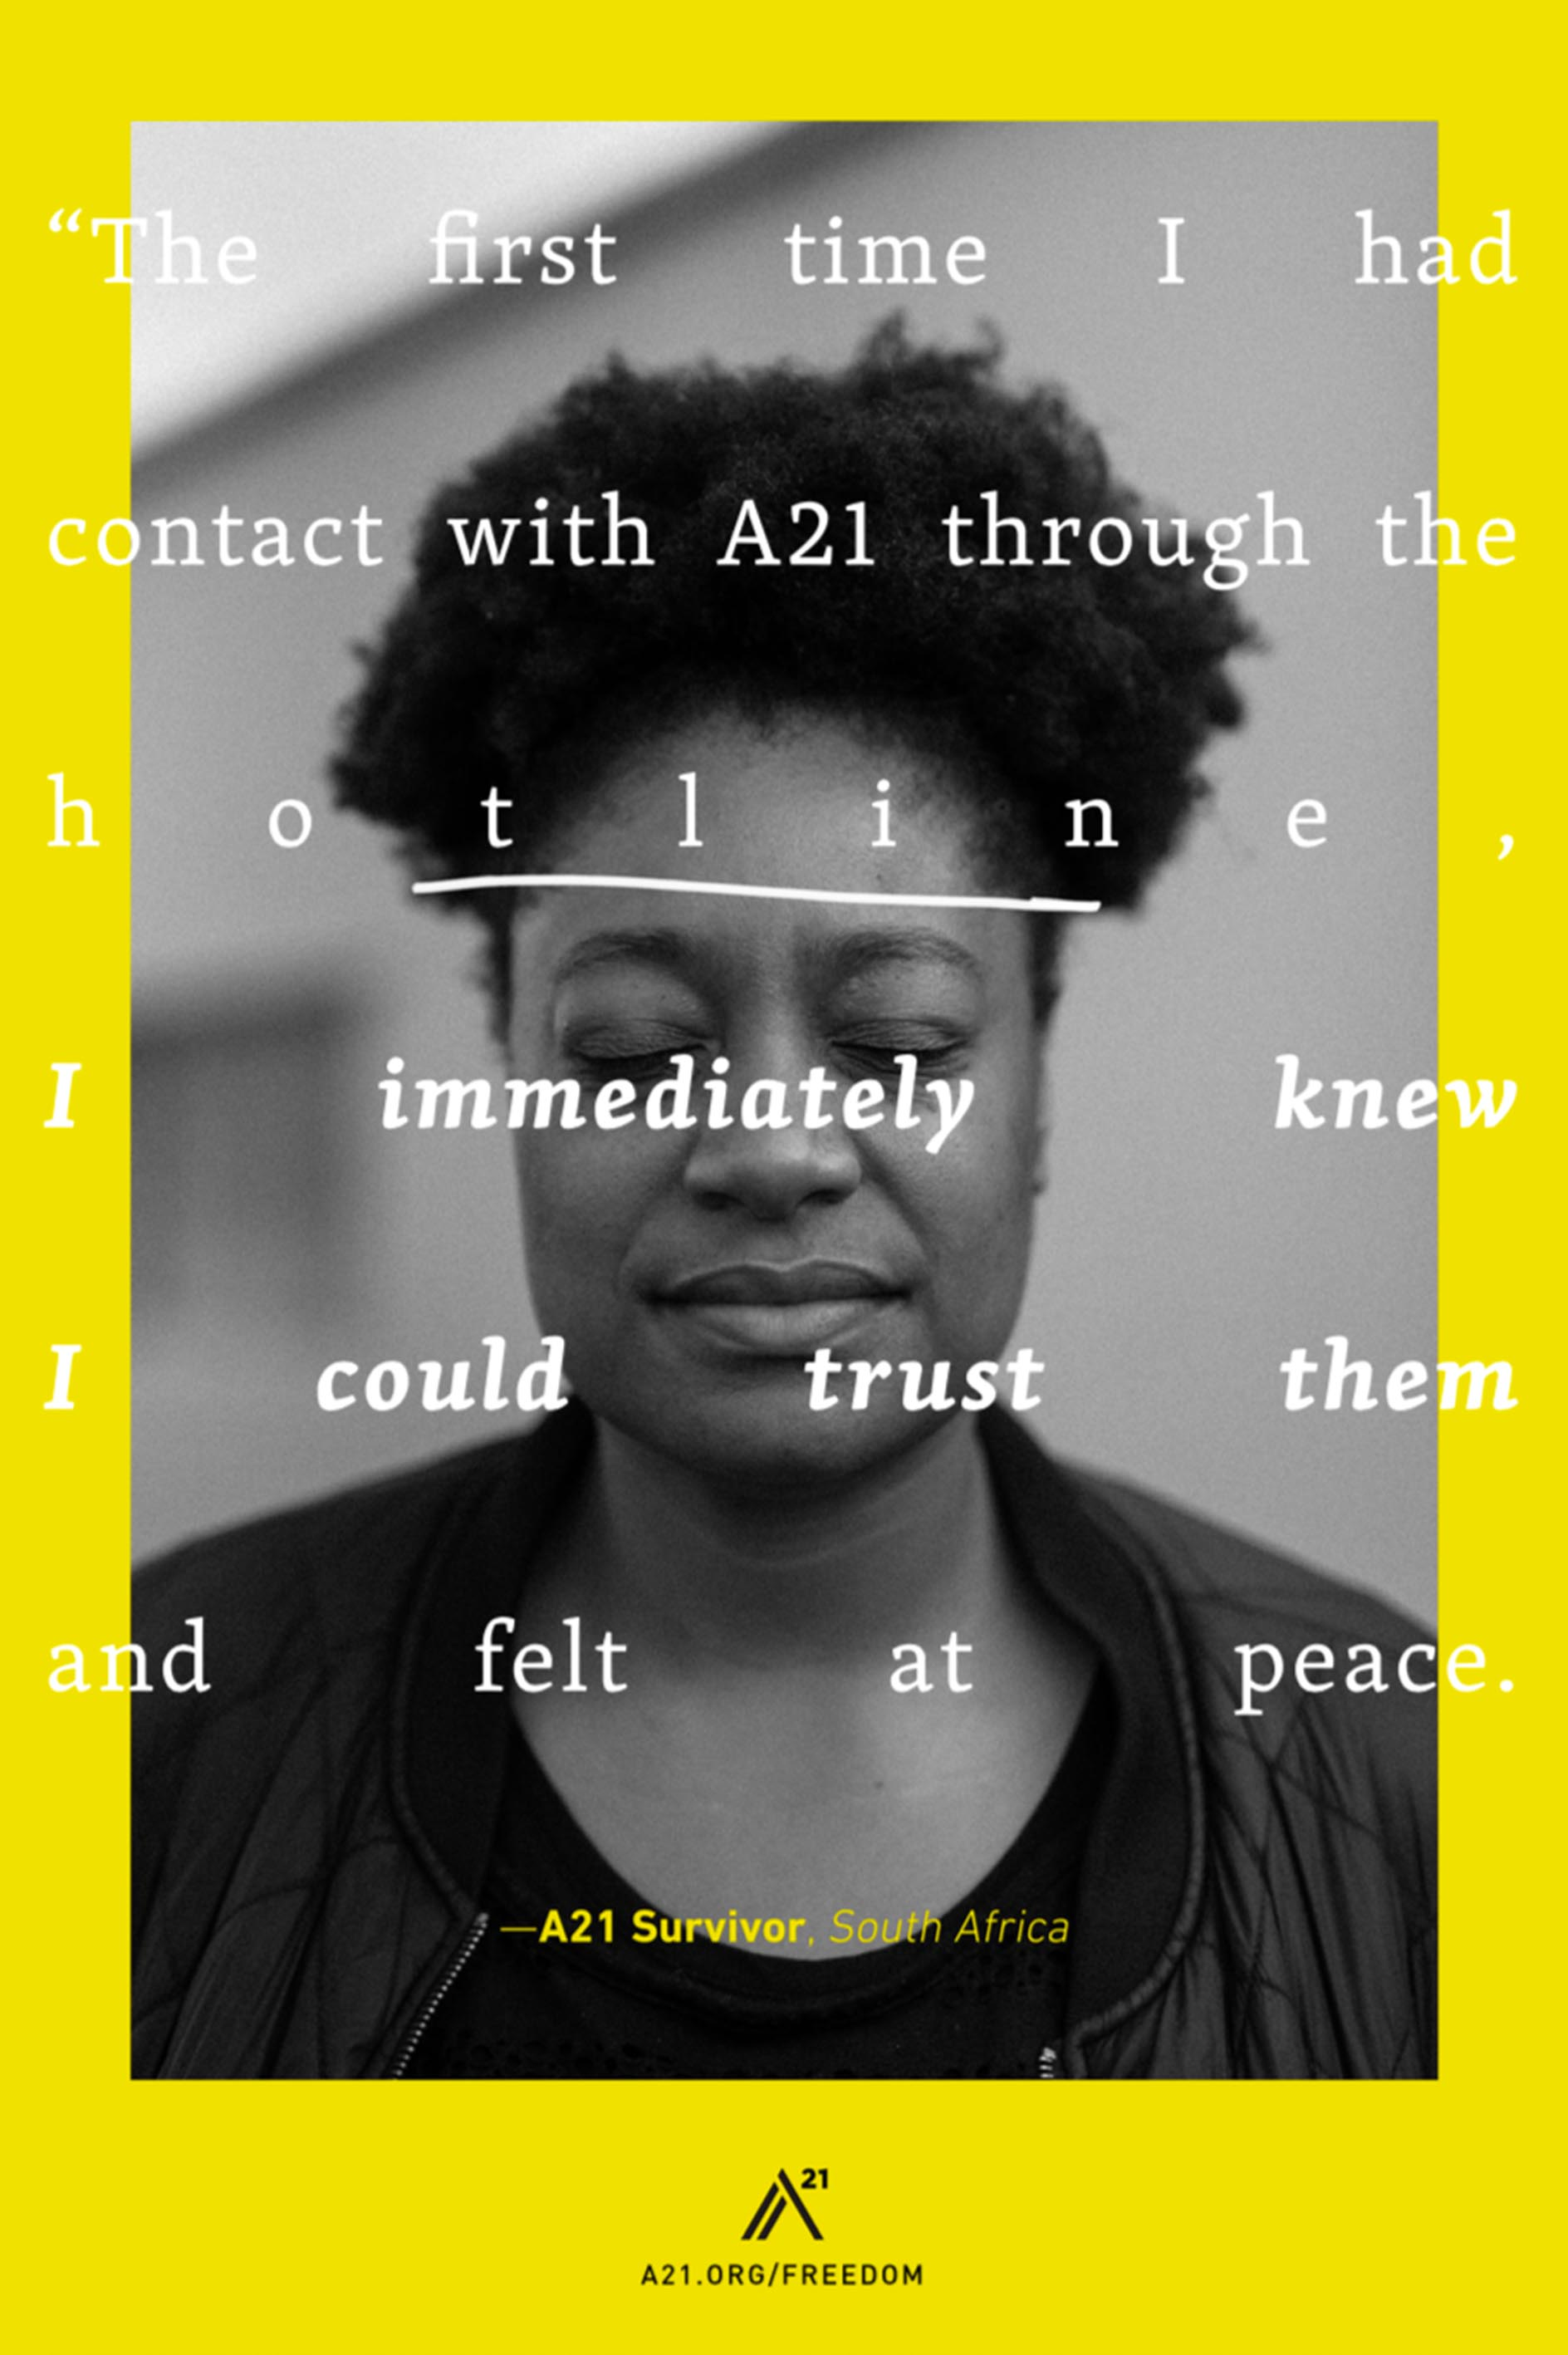 Poster 10: The first time I had contact with A21 through the hotline, I immediately knew I could trust them and felt at peace.